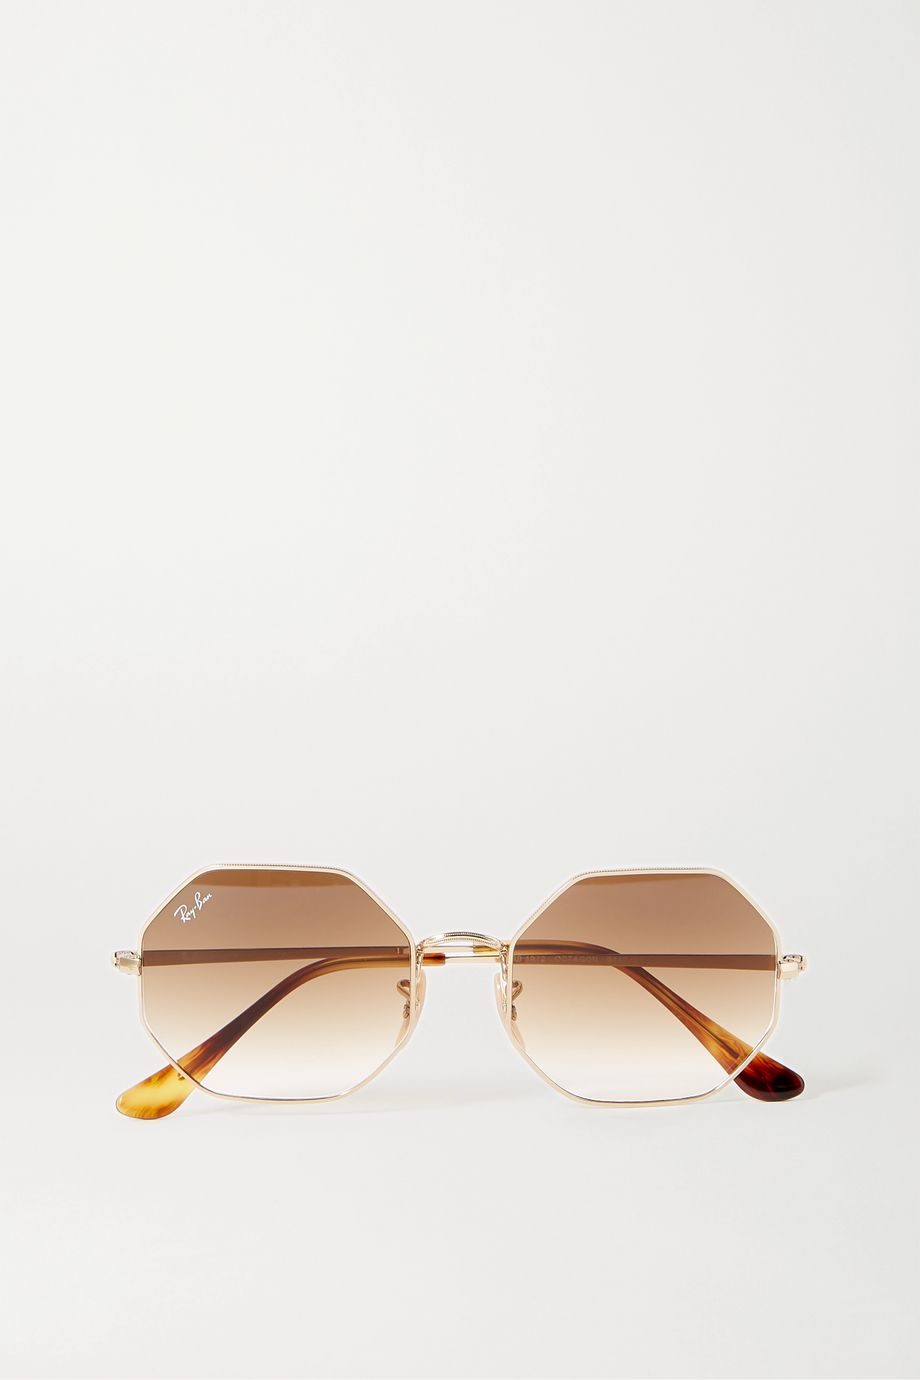 Ray-Ban Hexagon-frame gold-tone and tortoiseshell acetate sunglasses